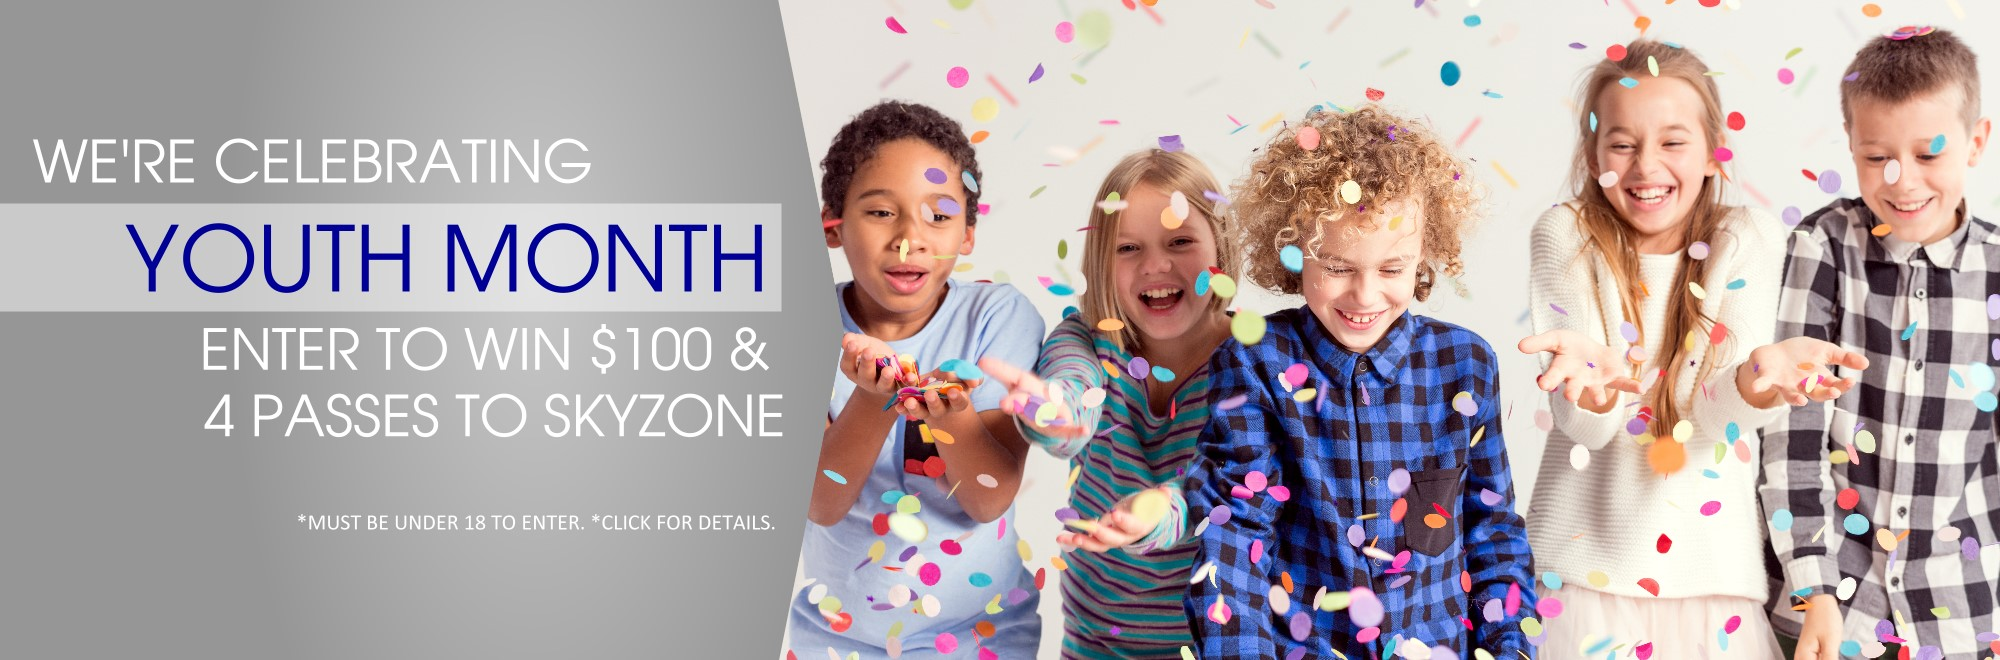 April is Youth Month- kids enter to win $100 & 4 passes to skyzone. click for details